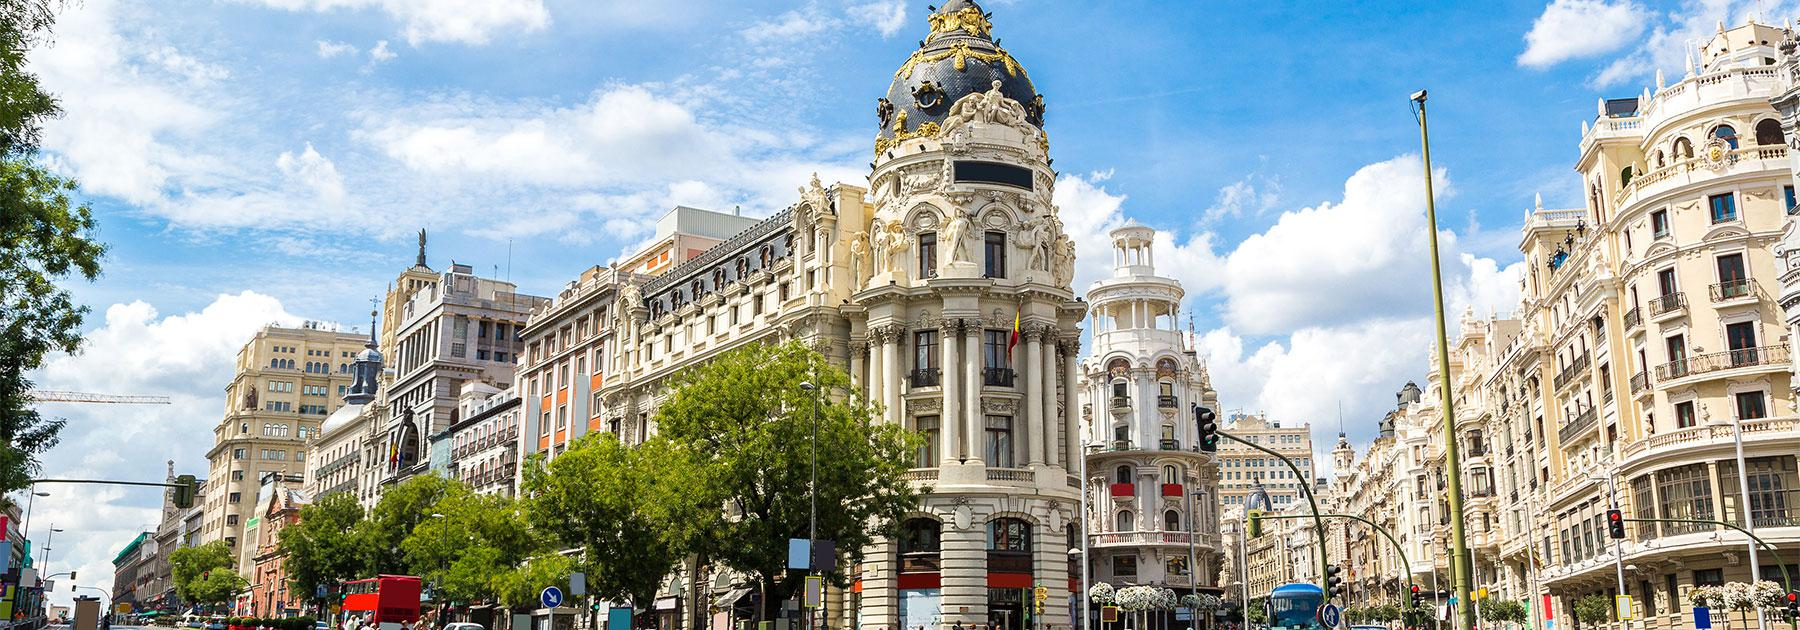 Group Travel Spain Itineraries And Trip Ideas